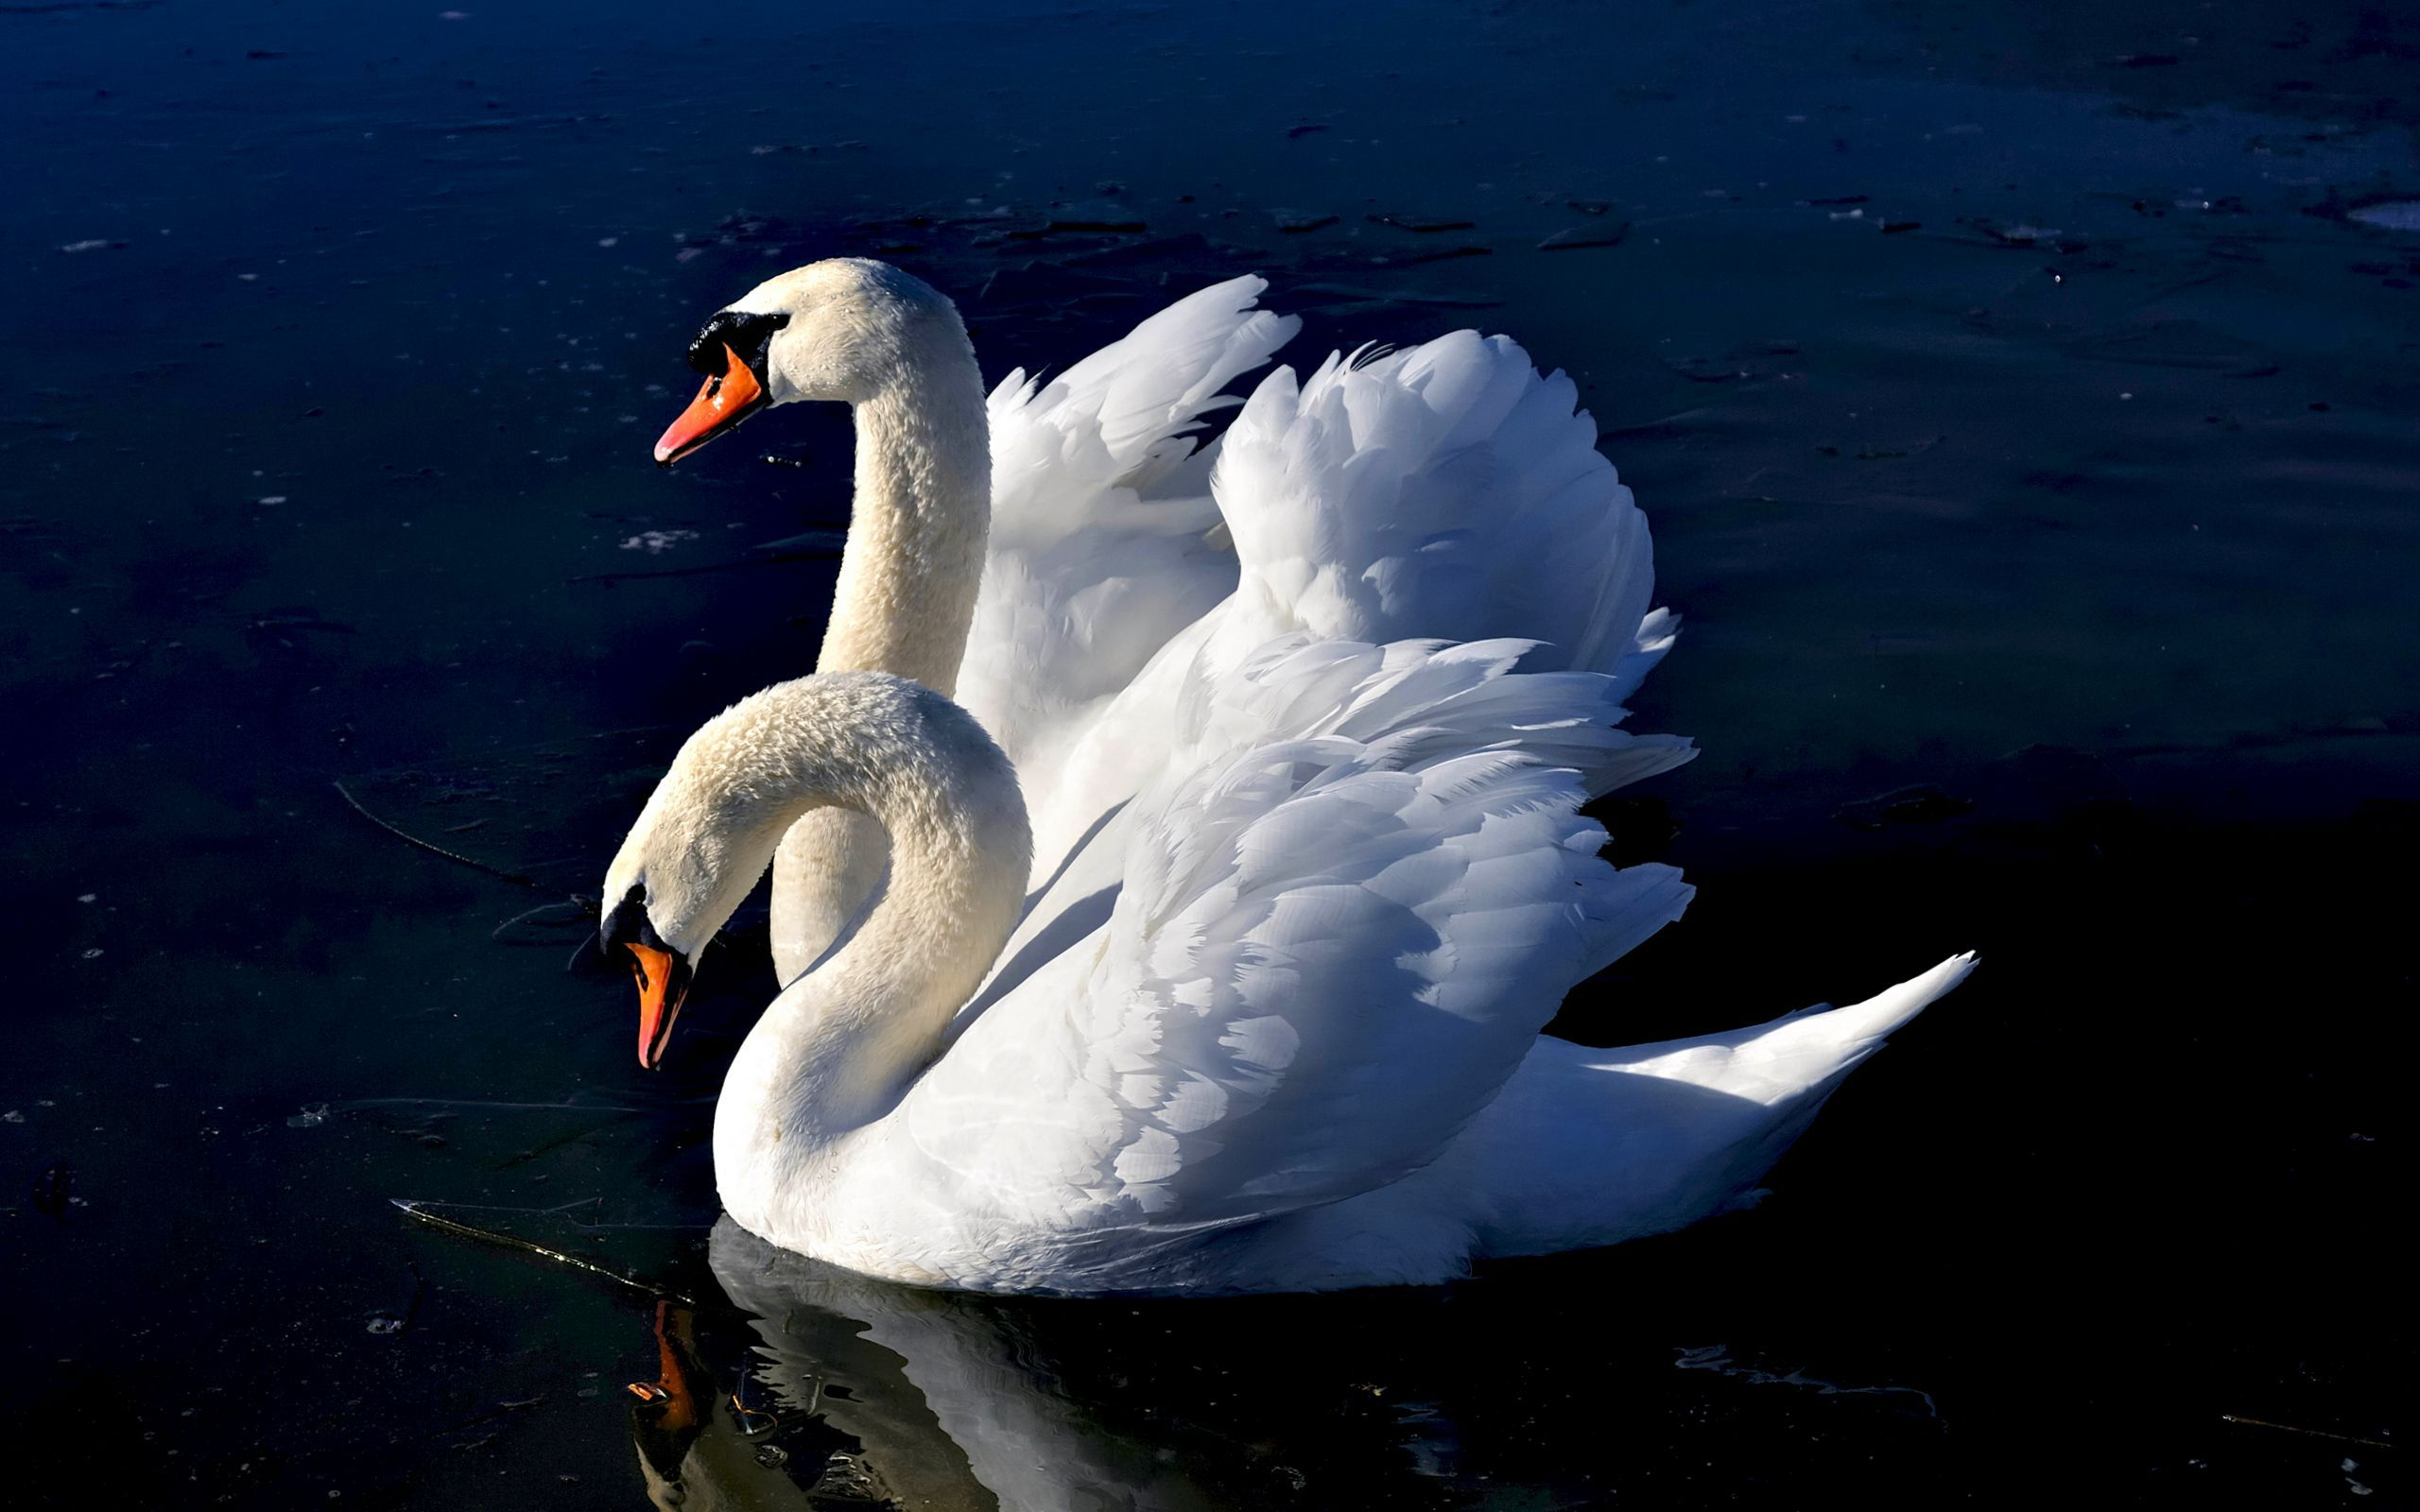 32239 download wallpaper Animals, Birds, Swans screensavers and pictures for free